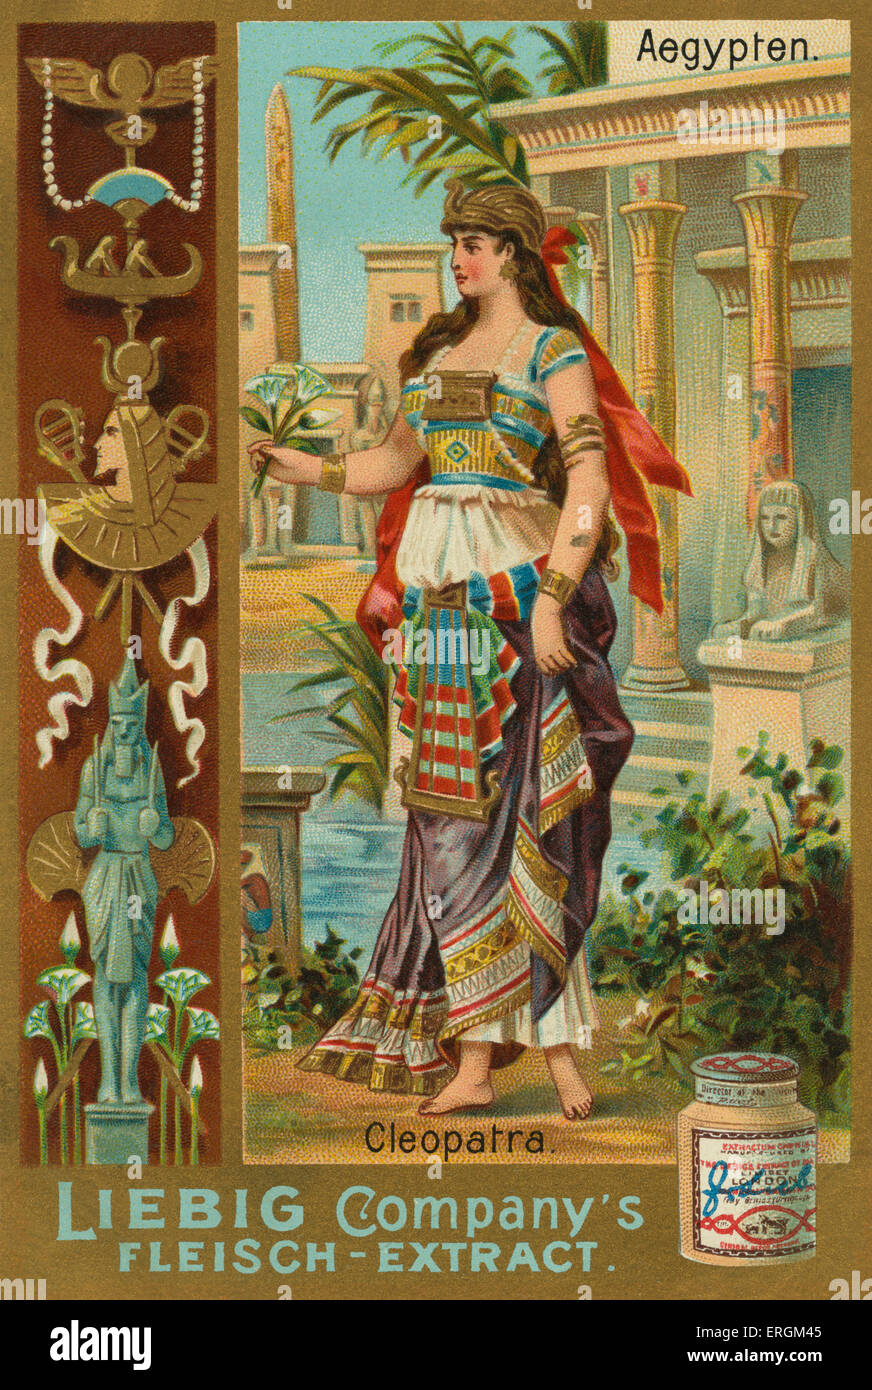 Cleopatra (69 BC –30 BC) - the last pharaoh of Ancient Egypt (51–30 BC). Liebig card, Famous women of ancient times, - Stock Image